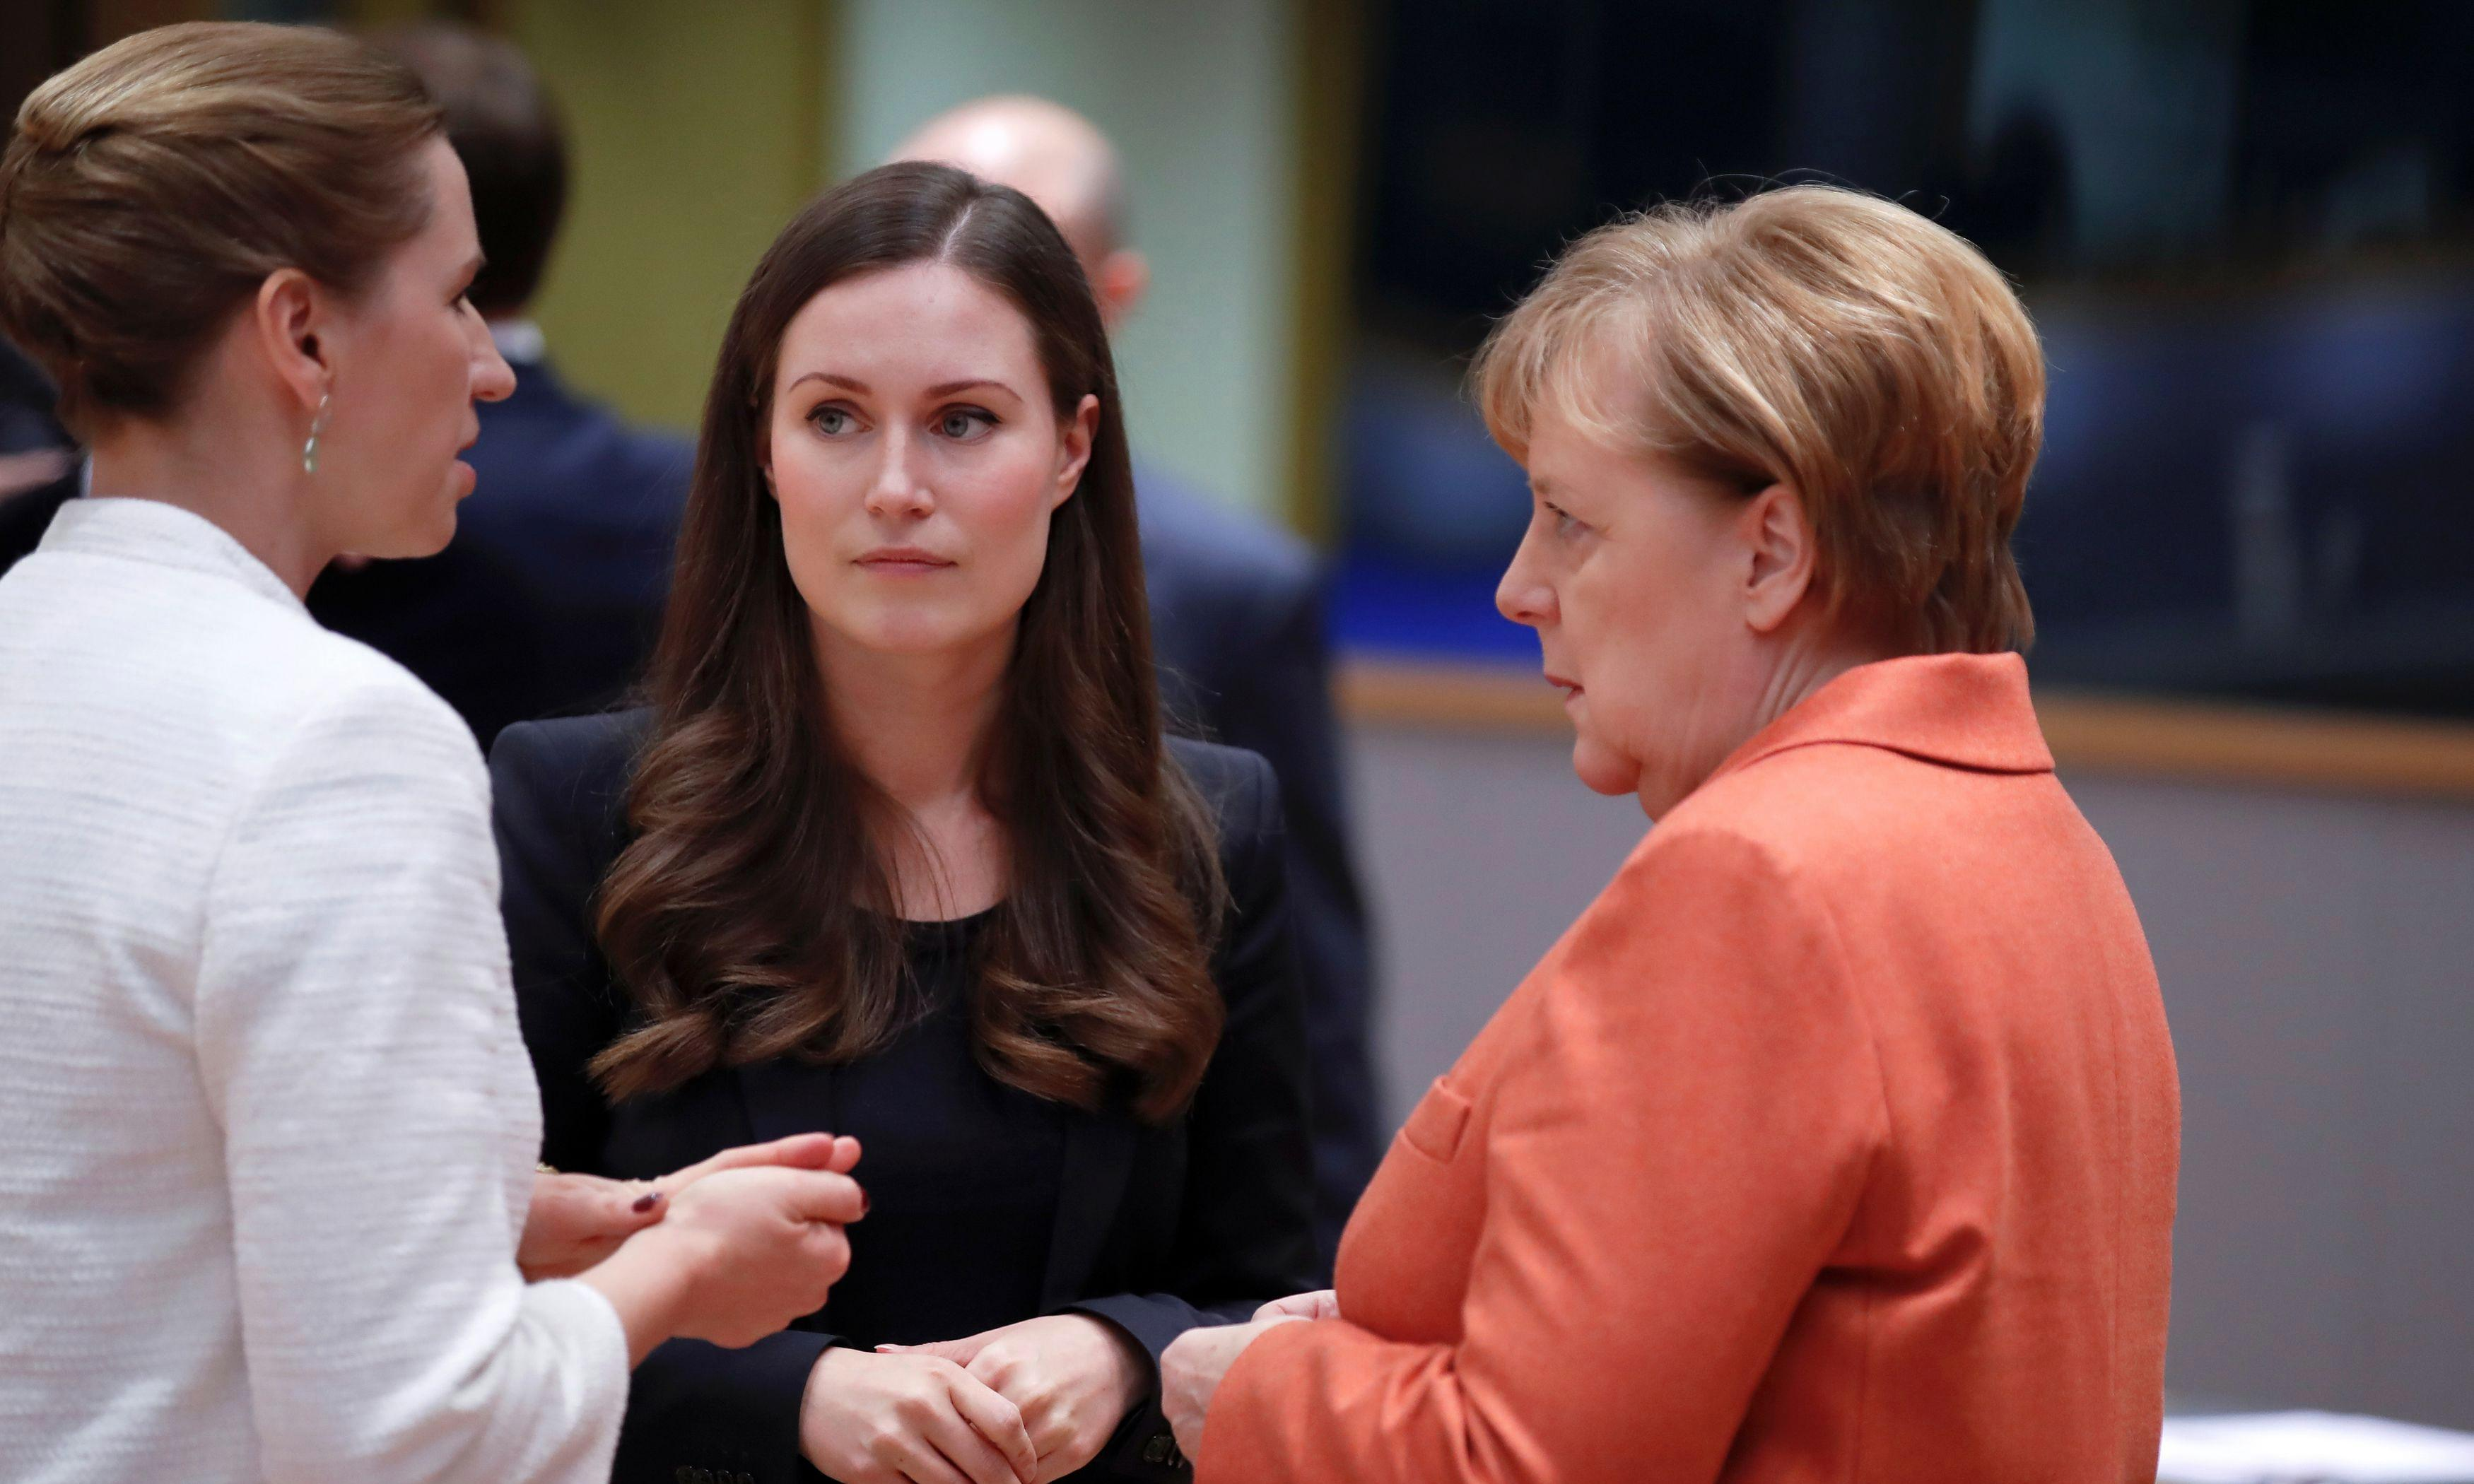 World's youngest PM brushes aside media furore at EU debut